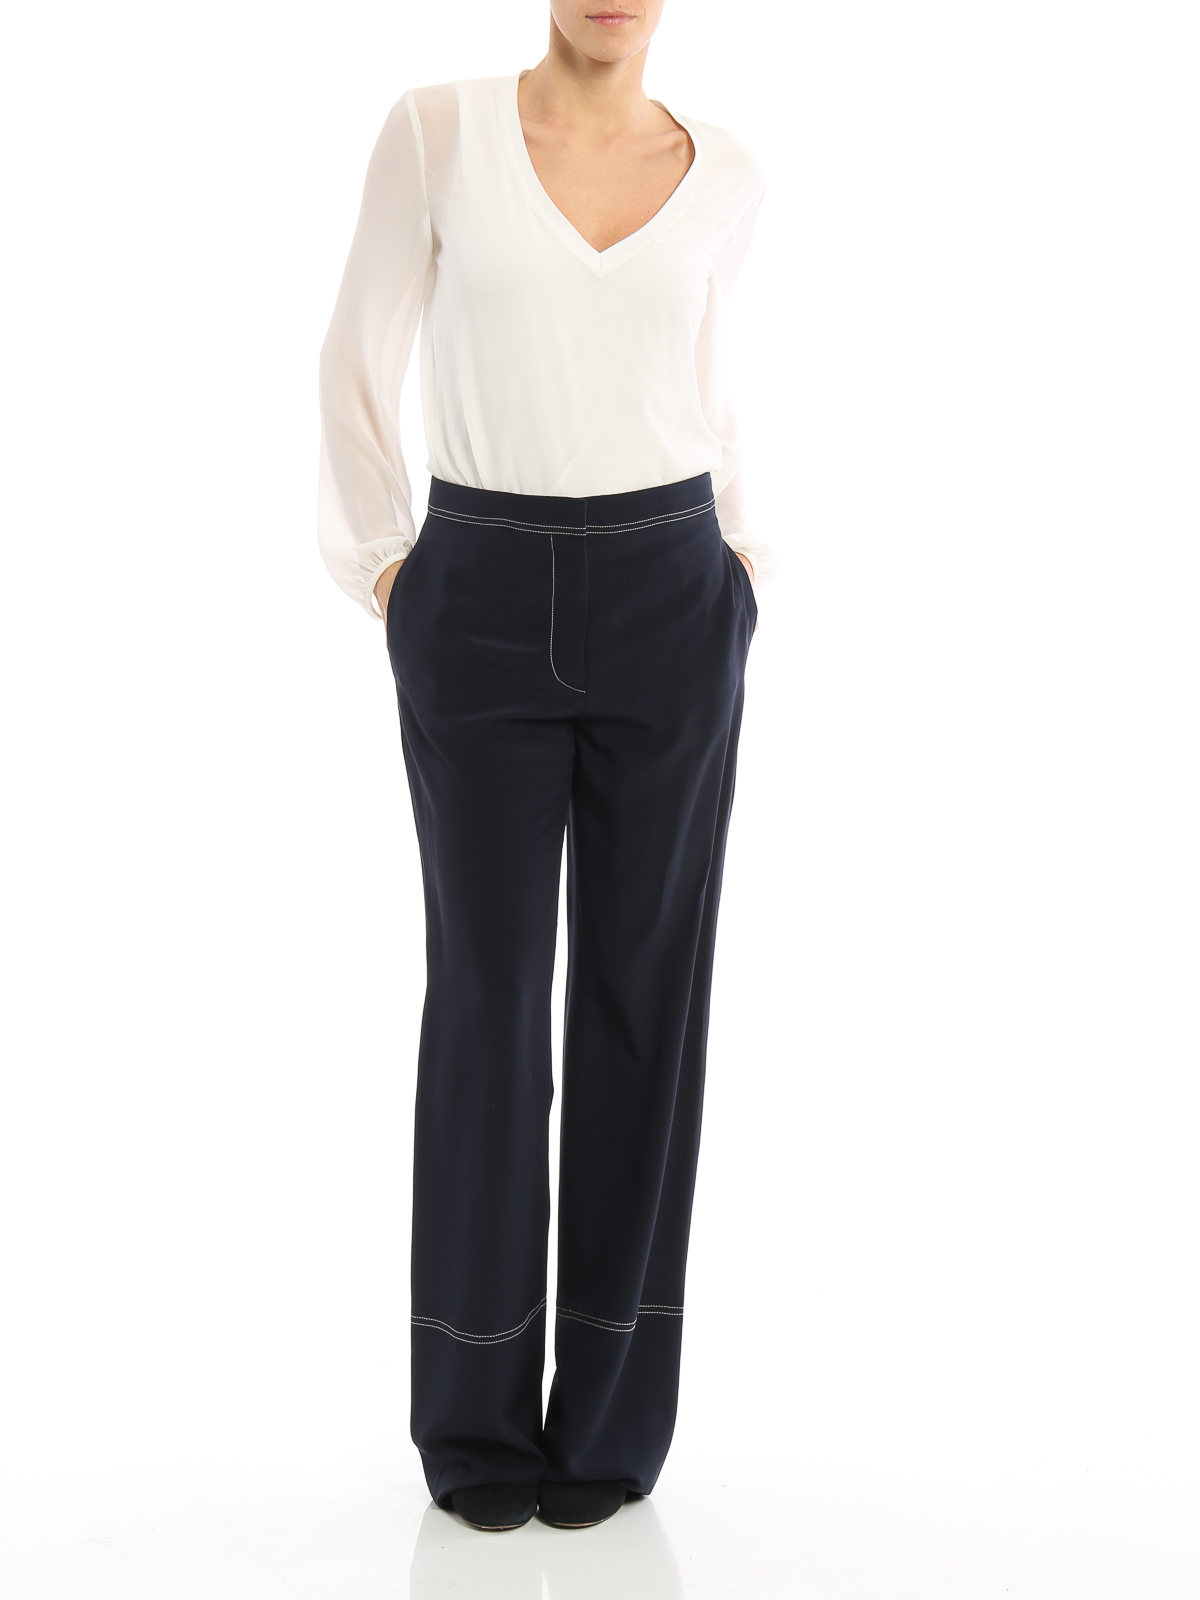 Stella McCartney wide-leg silk trousers Outlet New Buy Cheap Shop For Find Great For Sale Browse Sale Online hSe6Ukja